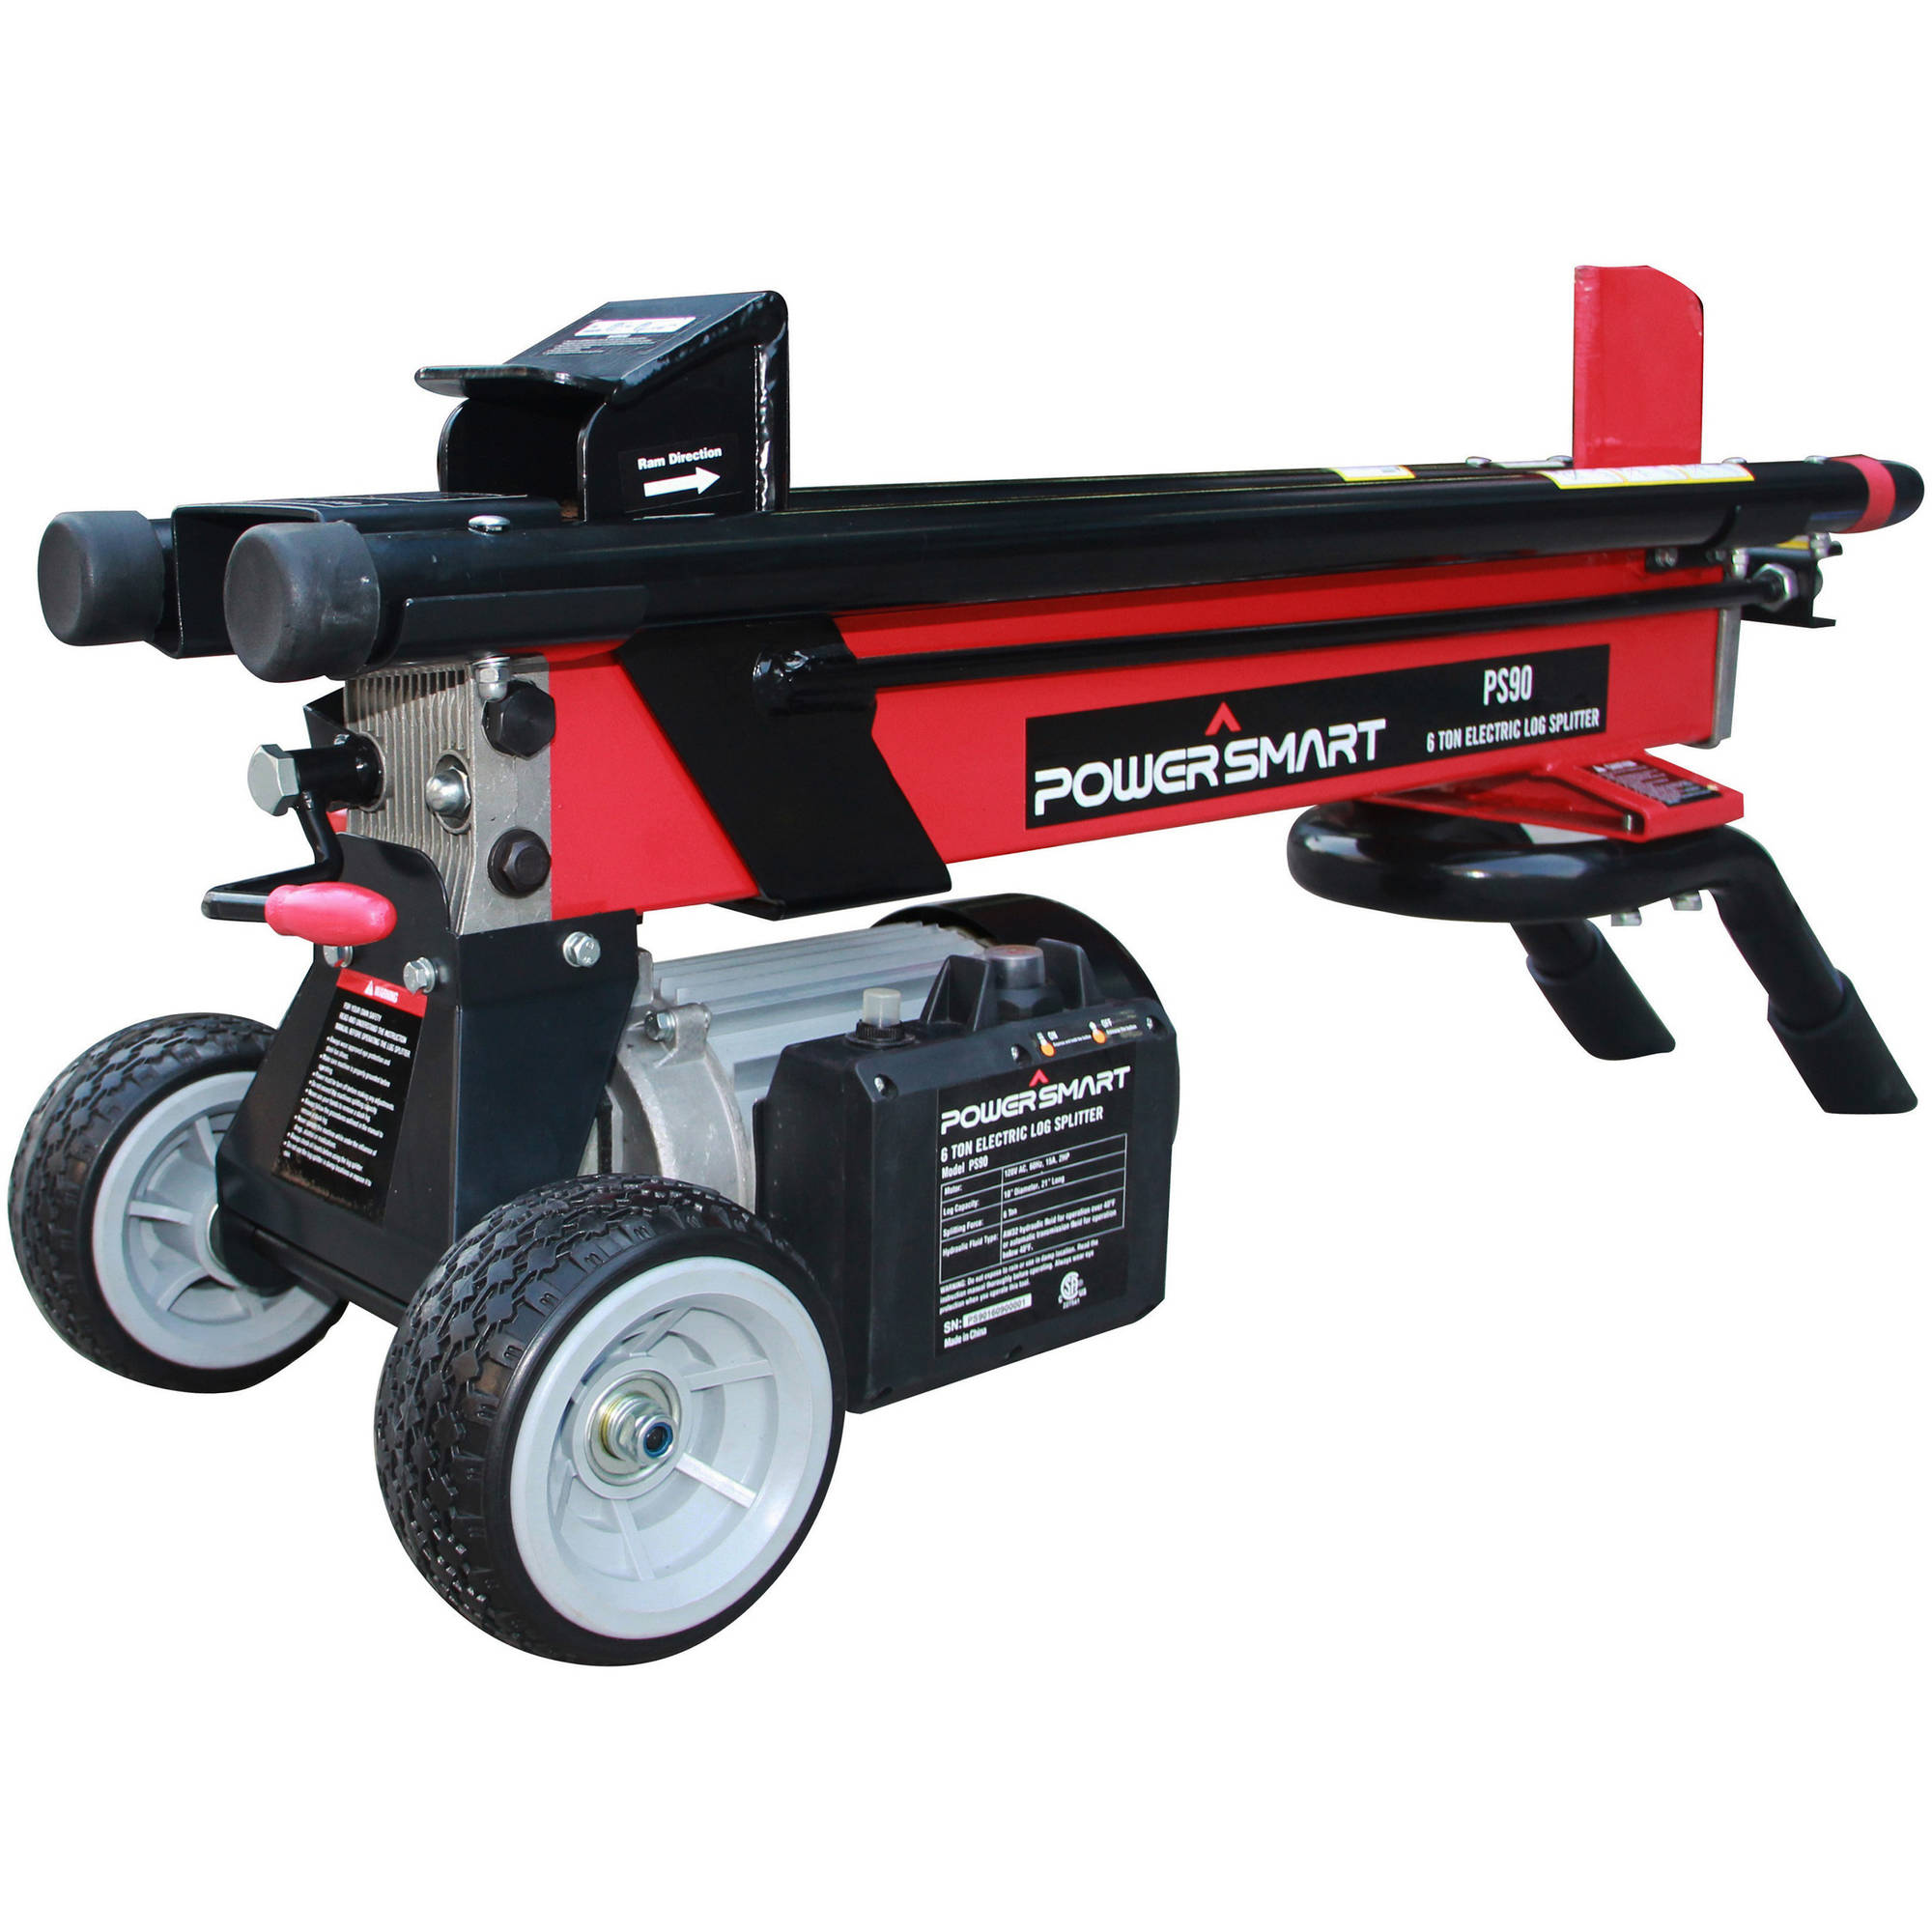 Power Smart PS90 6 Ton 15 Amp Electric Log Splitter by Log Splitters